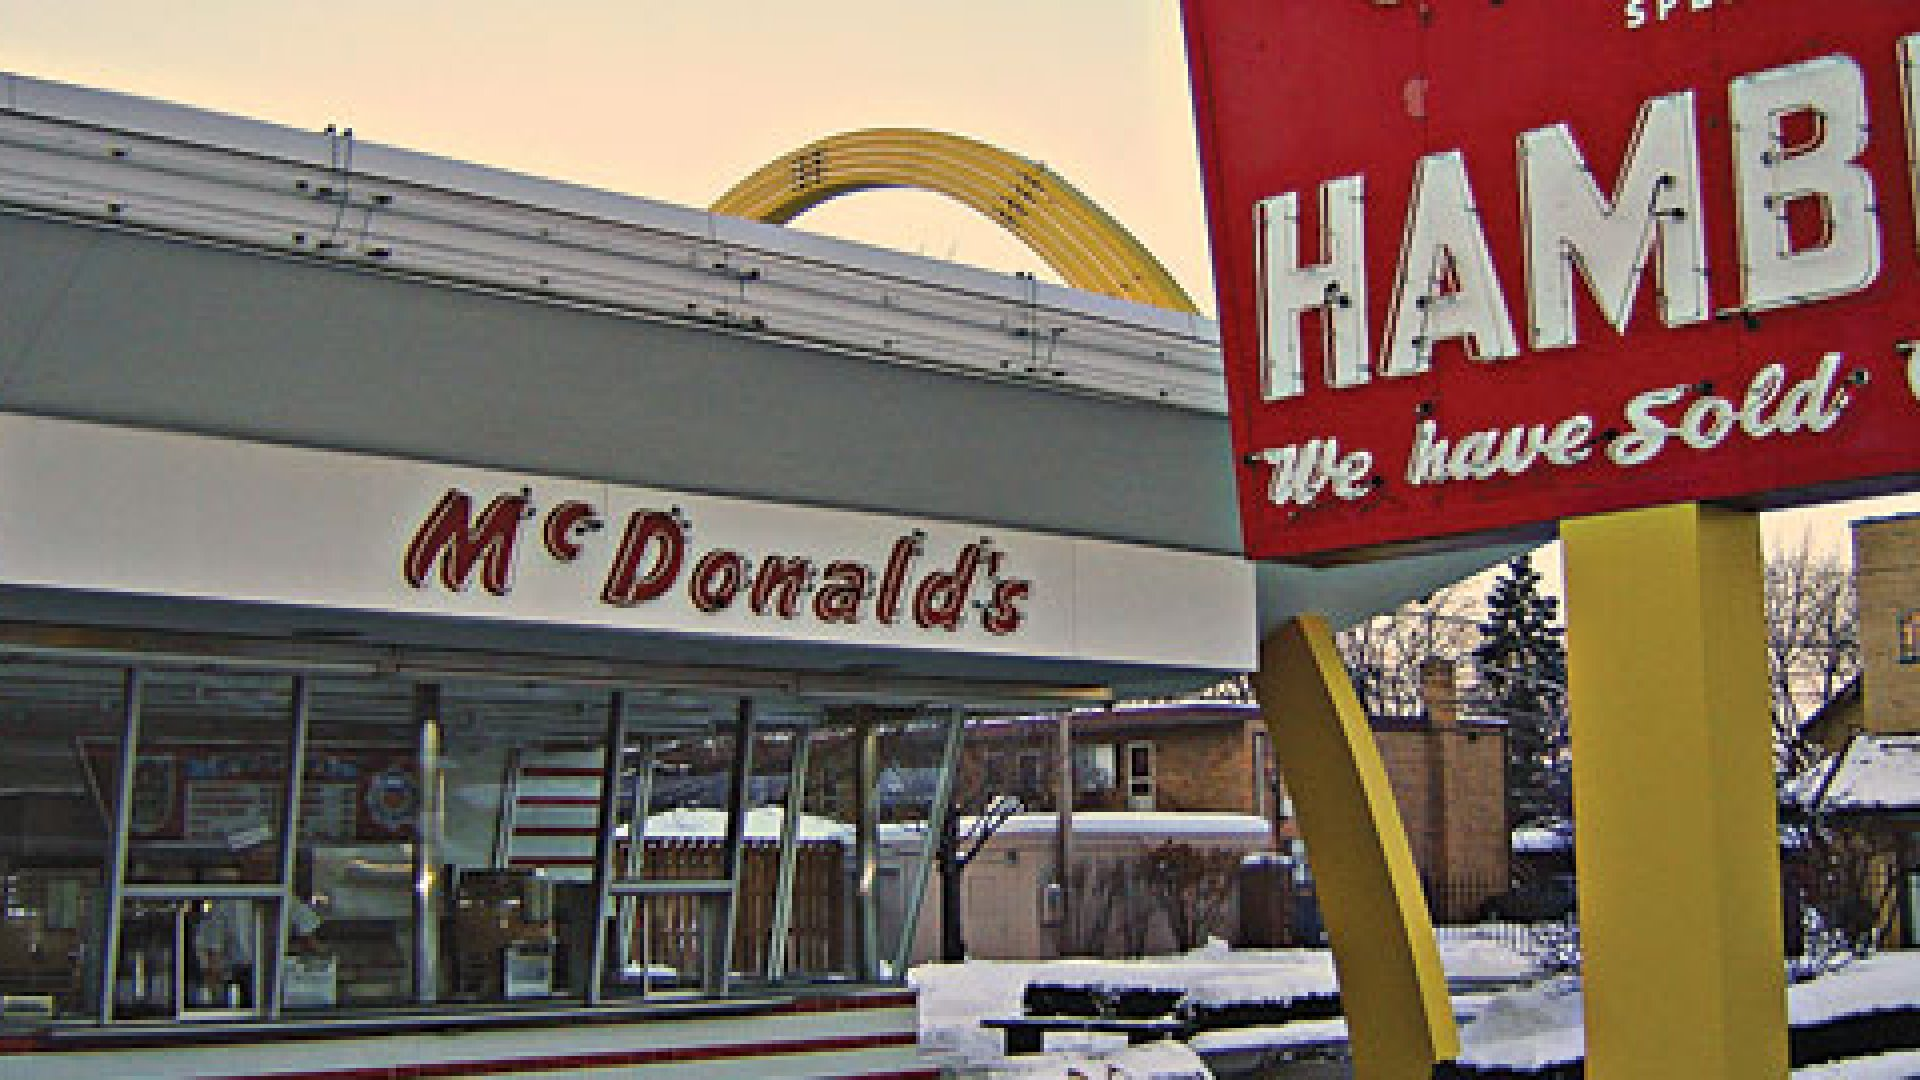 McDonald's is now the sixth most valuable brand in the world, with a market capitalization of more than $77 billion